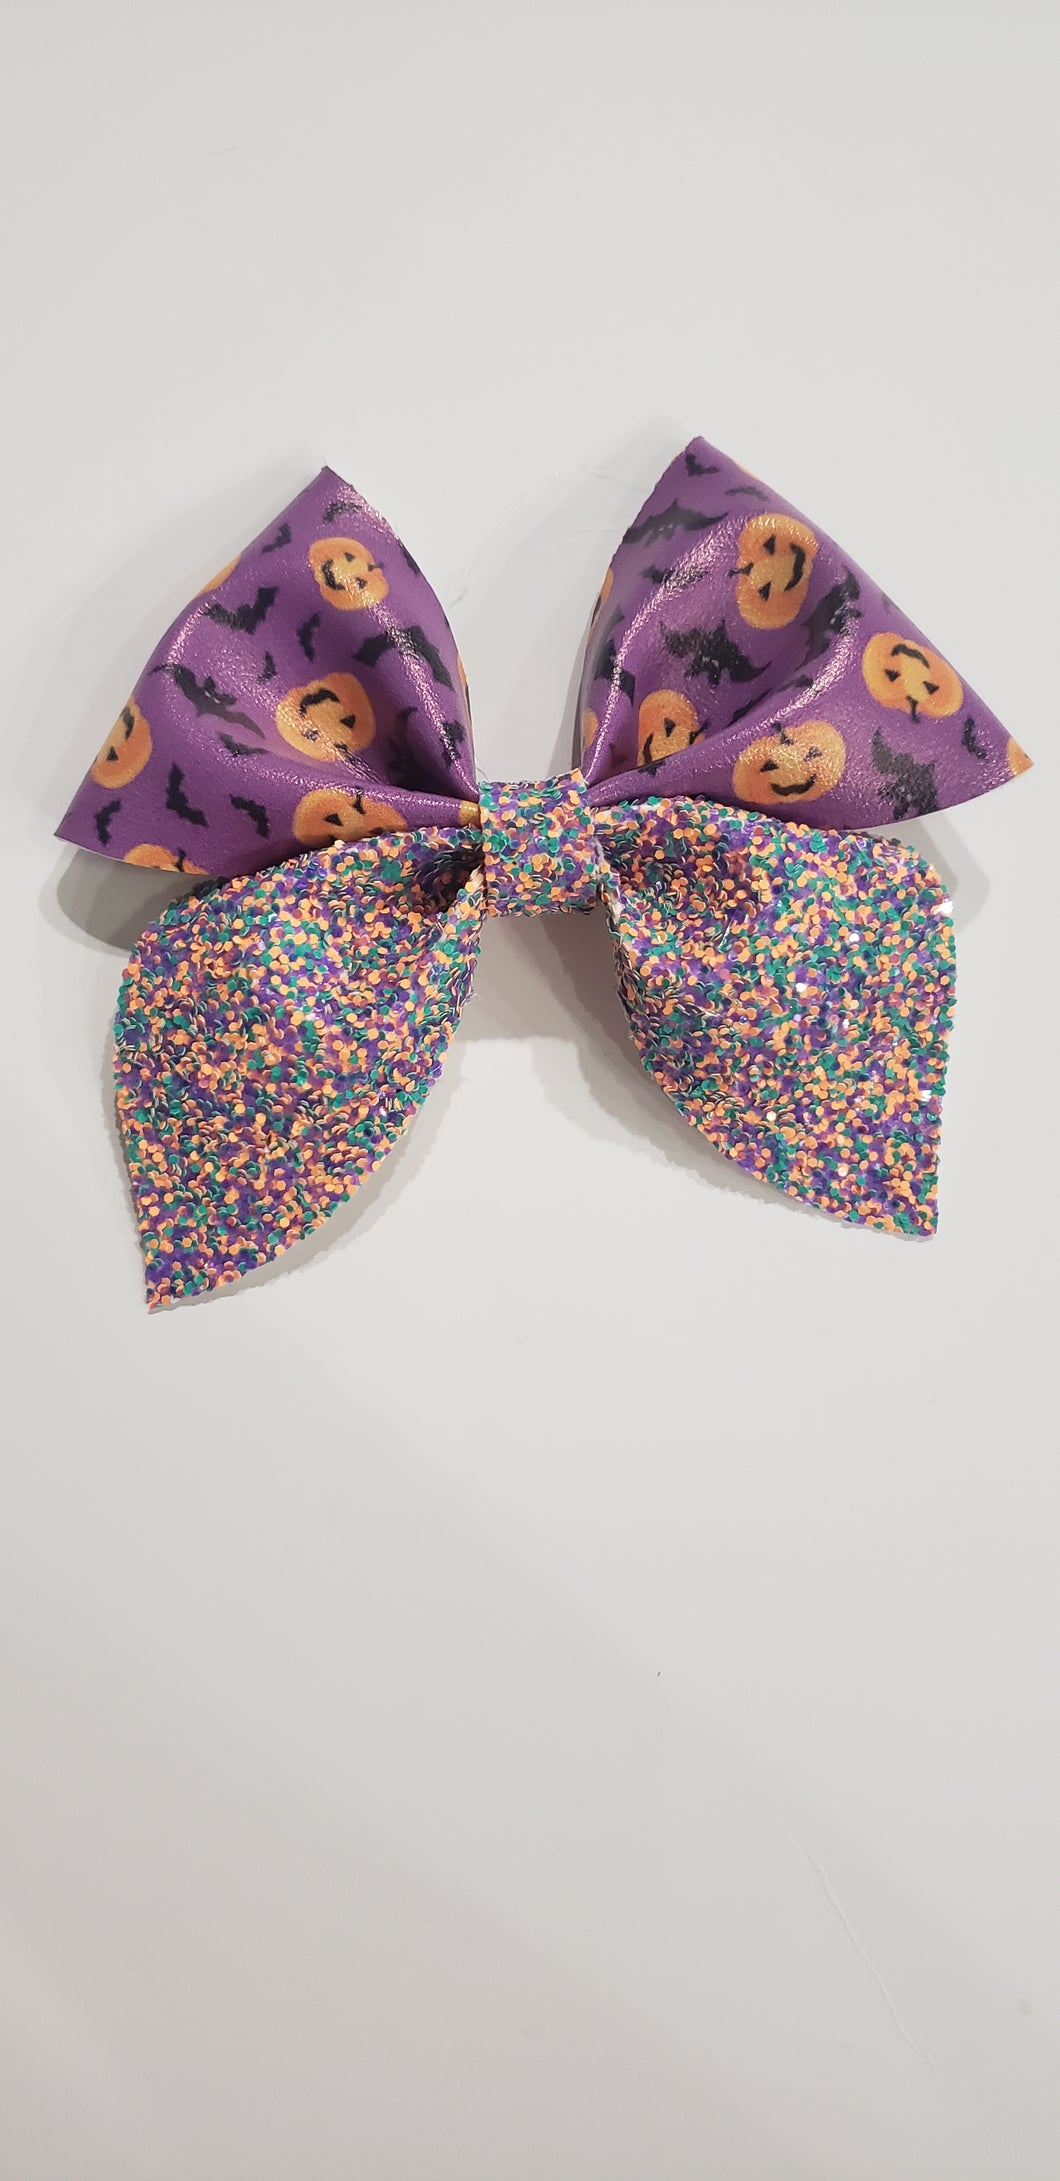 Pumpkin and Bats Violet- 30% off discount